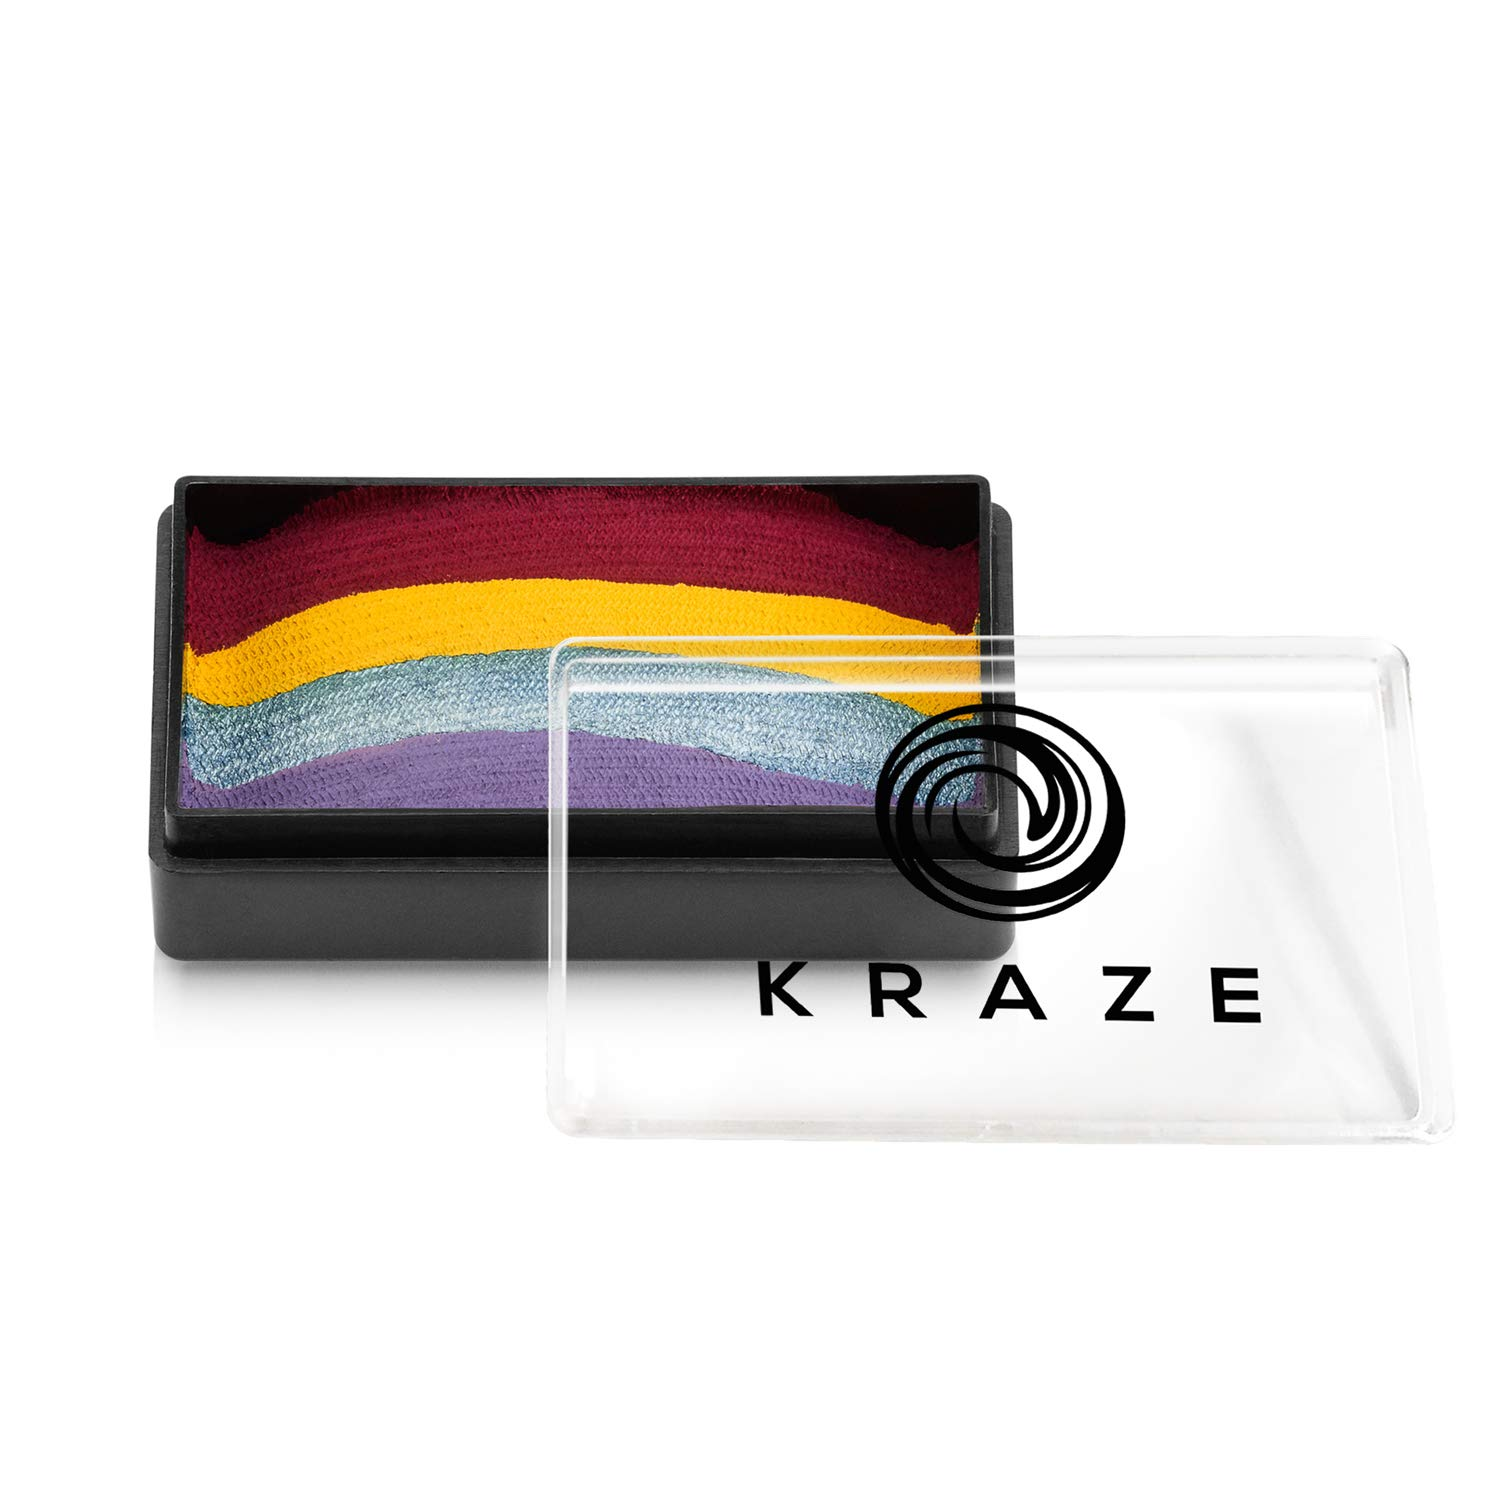 Kraze FX Dome Stroke - Harbor Sunset (25 gm), Professional 1-Stroke Split Cake, Hypoallergenic, Non-Toxic, Water Activated Face & Body Painting Makeup Supplies for Sensitive Skin, Kid Safe, Adults